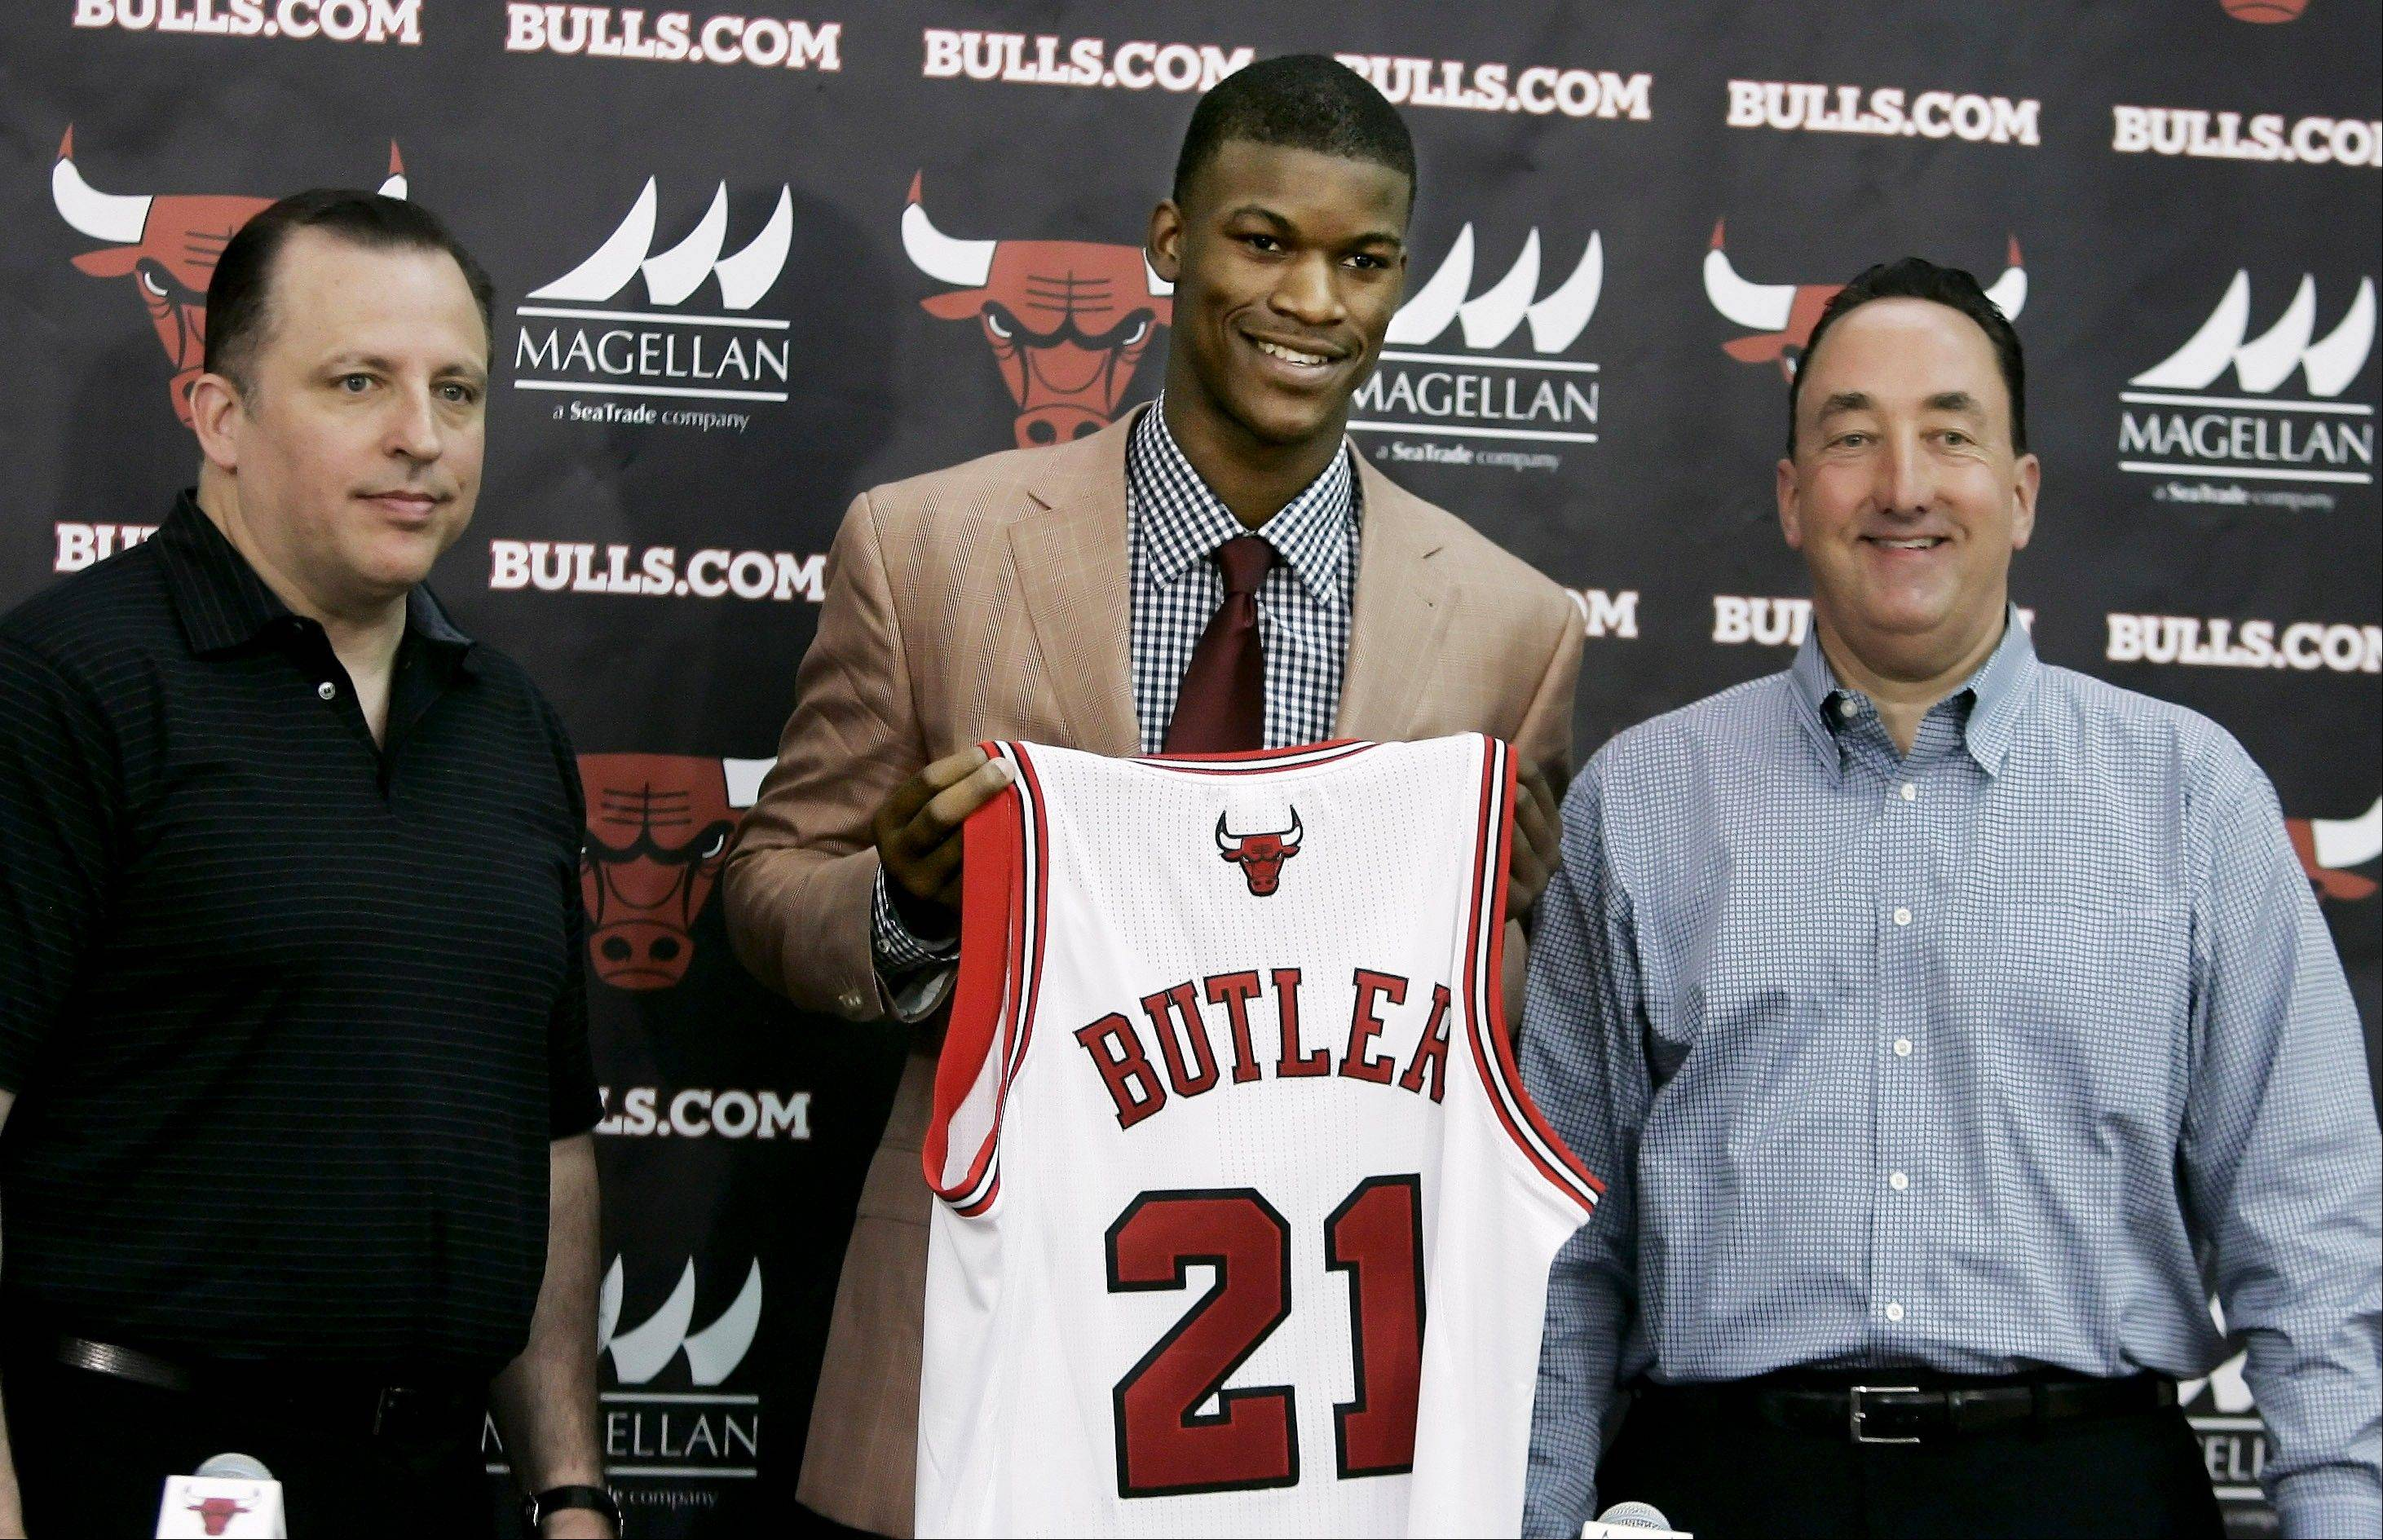 Jimmy Butler is introduced to the media Monday by Bulls general manager Gar Forman, right, and head coach Tom Thibodeau at the Berto Center in Deerfield.,